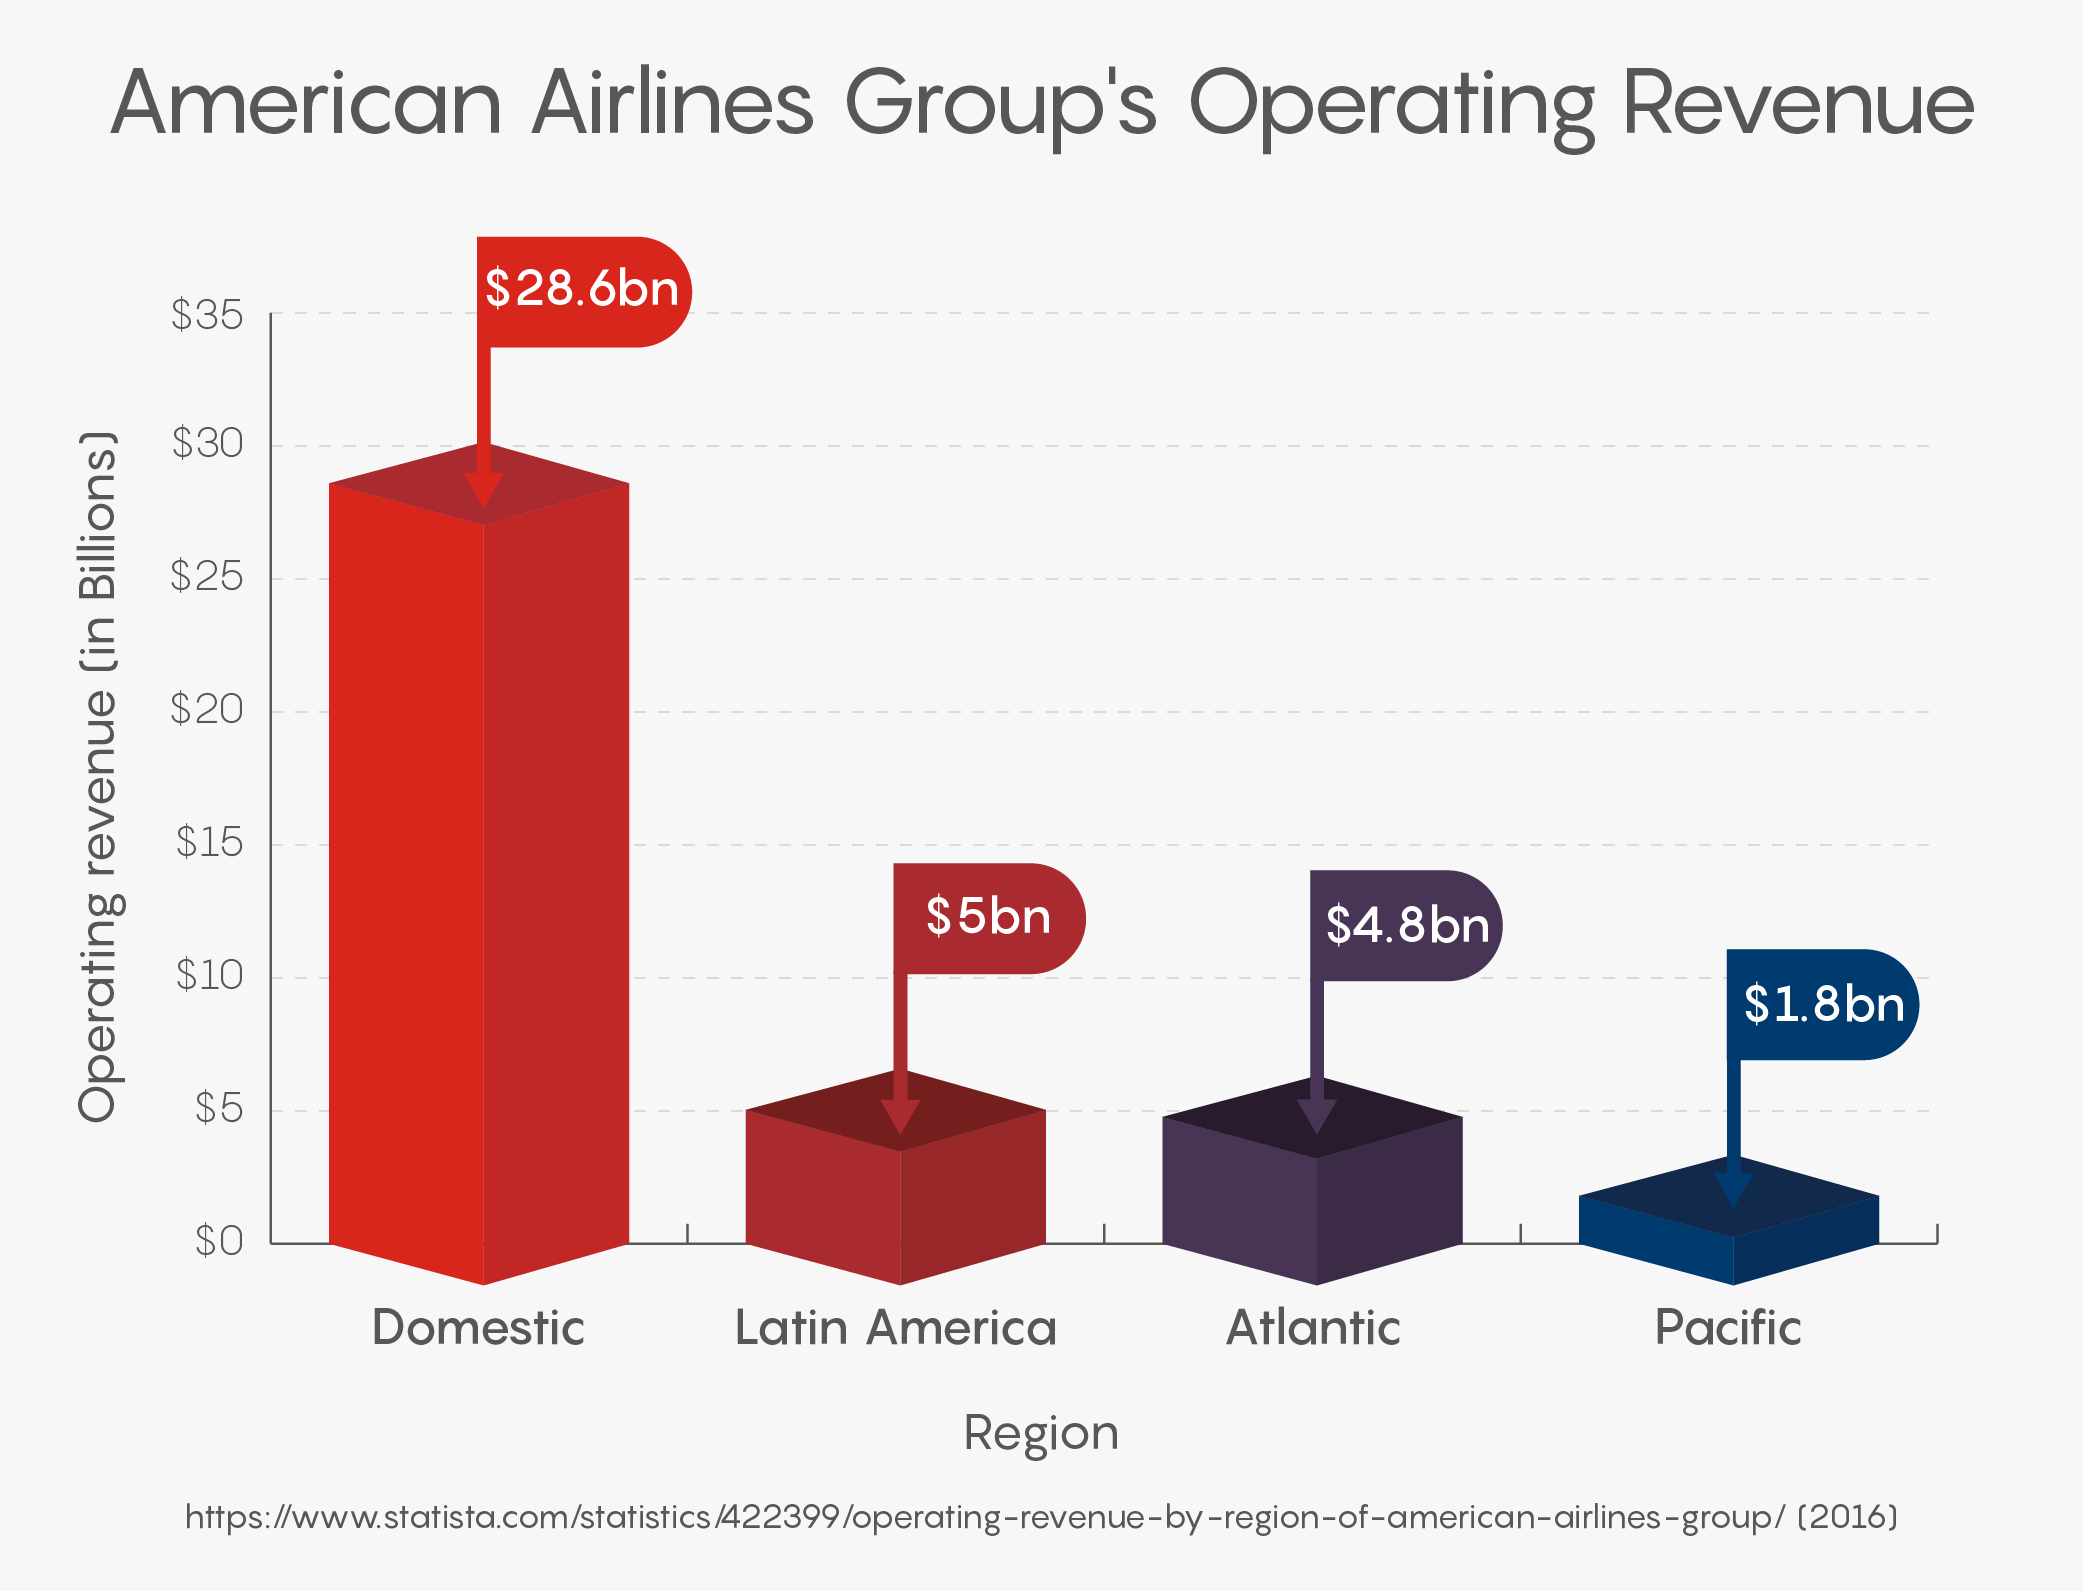 American Airlines Group's Operating Revenue